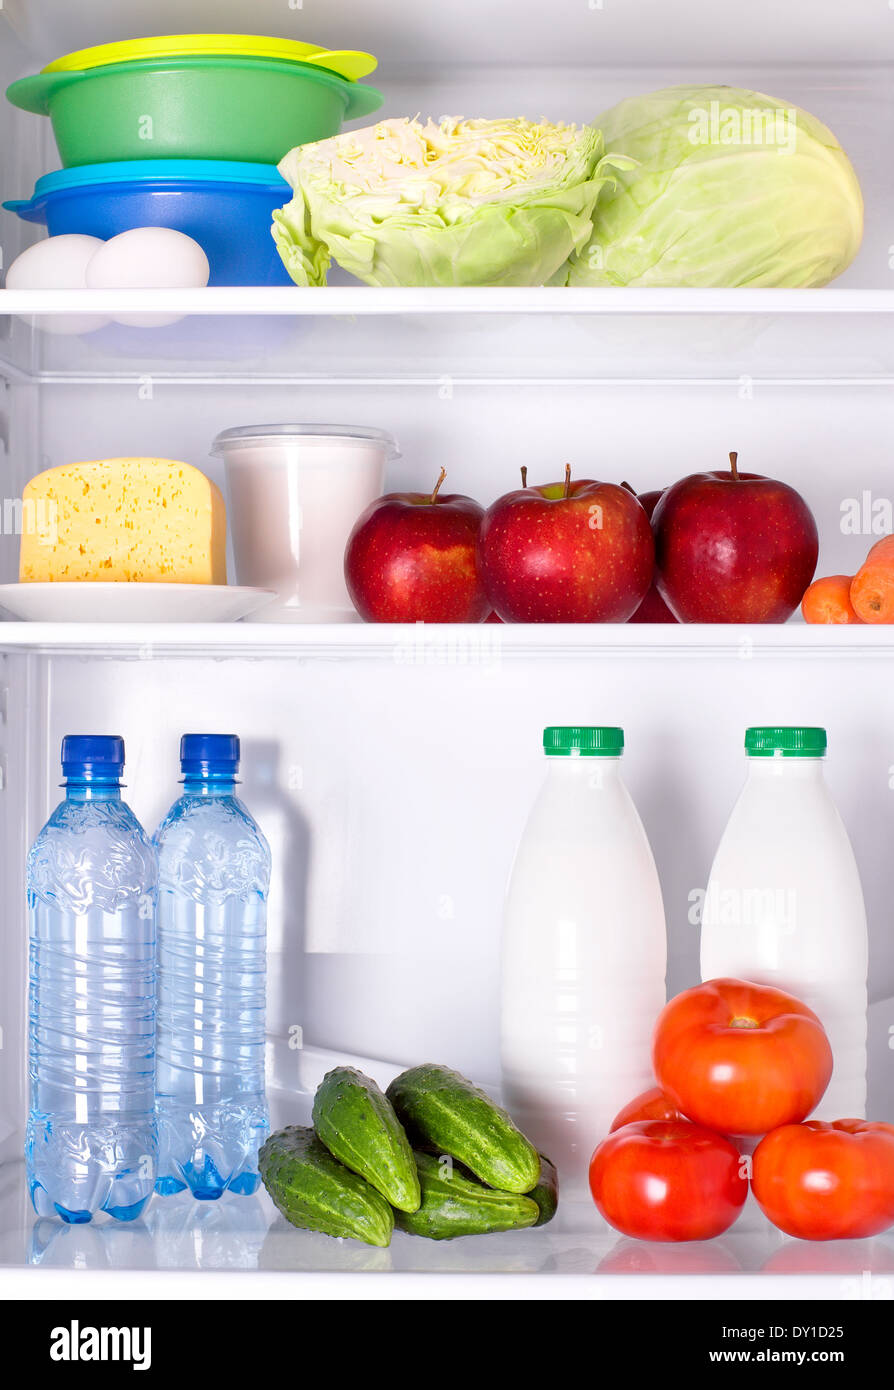 Refrigerator full of healthy food. Vegetables fruits water and dairy products  sc 1 st  Alamy & Refrigerator full of healthy food. Vegetables fruits water and ...